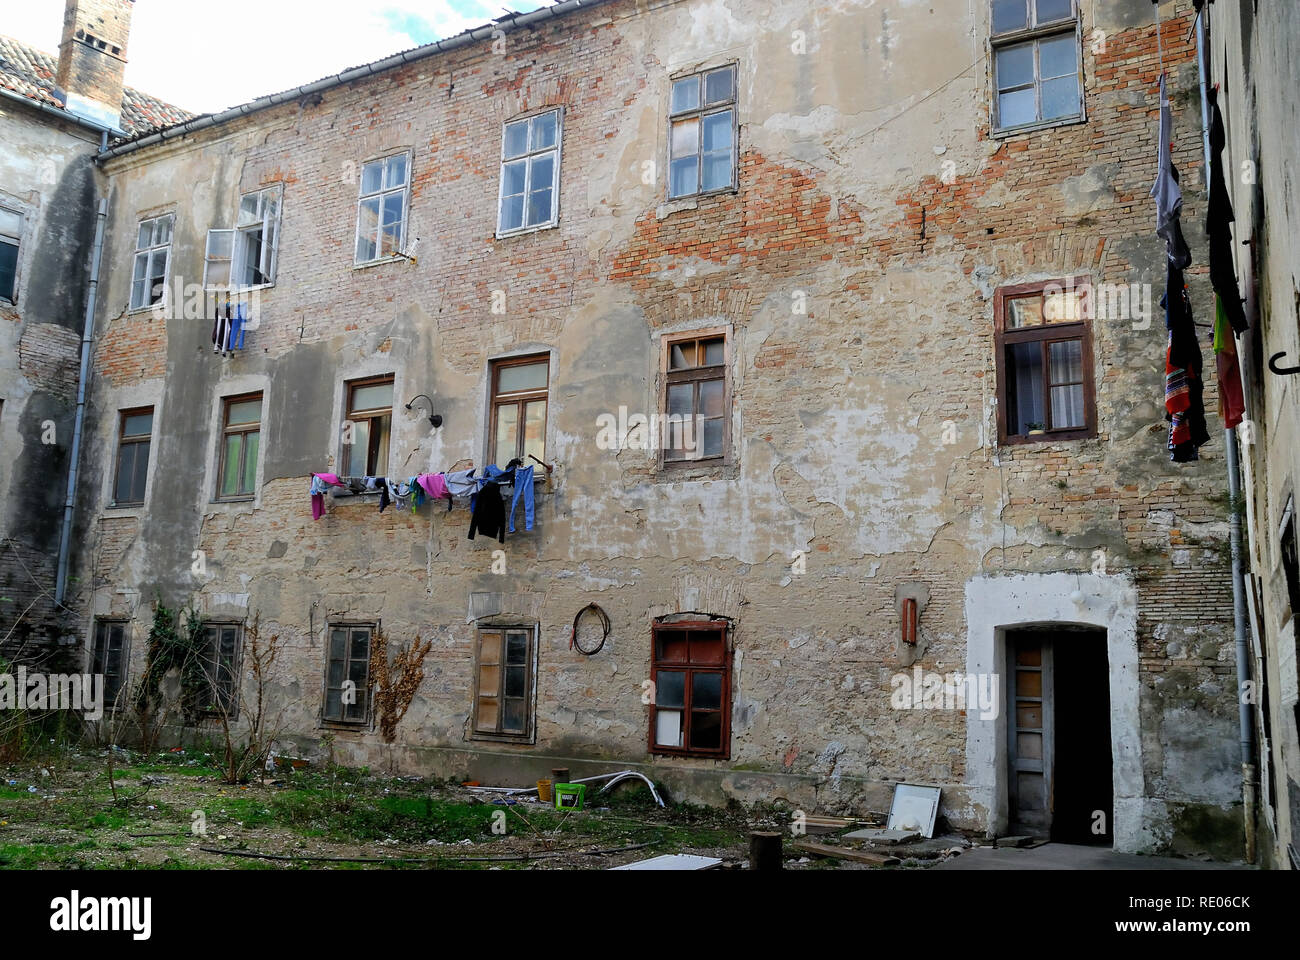 Senj, Croatia. Trg Clinica (English : Clinica square). Buildings occupied by homeless people. The courtyard. - Stock Image